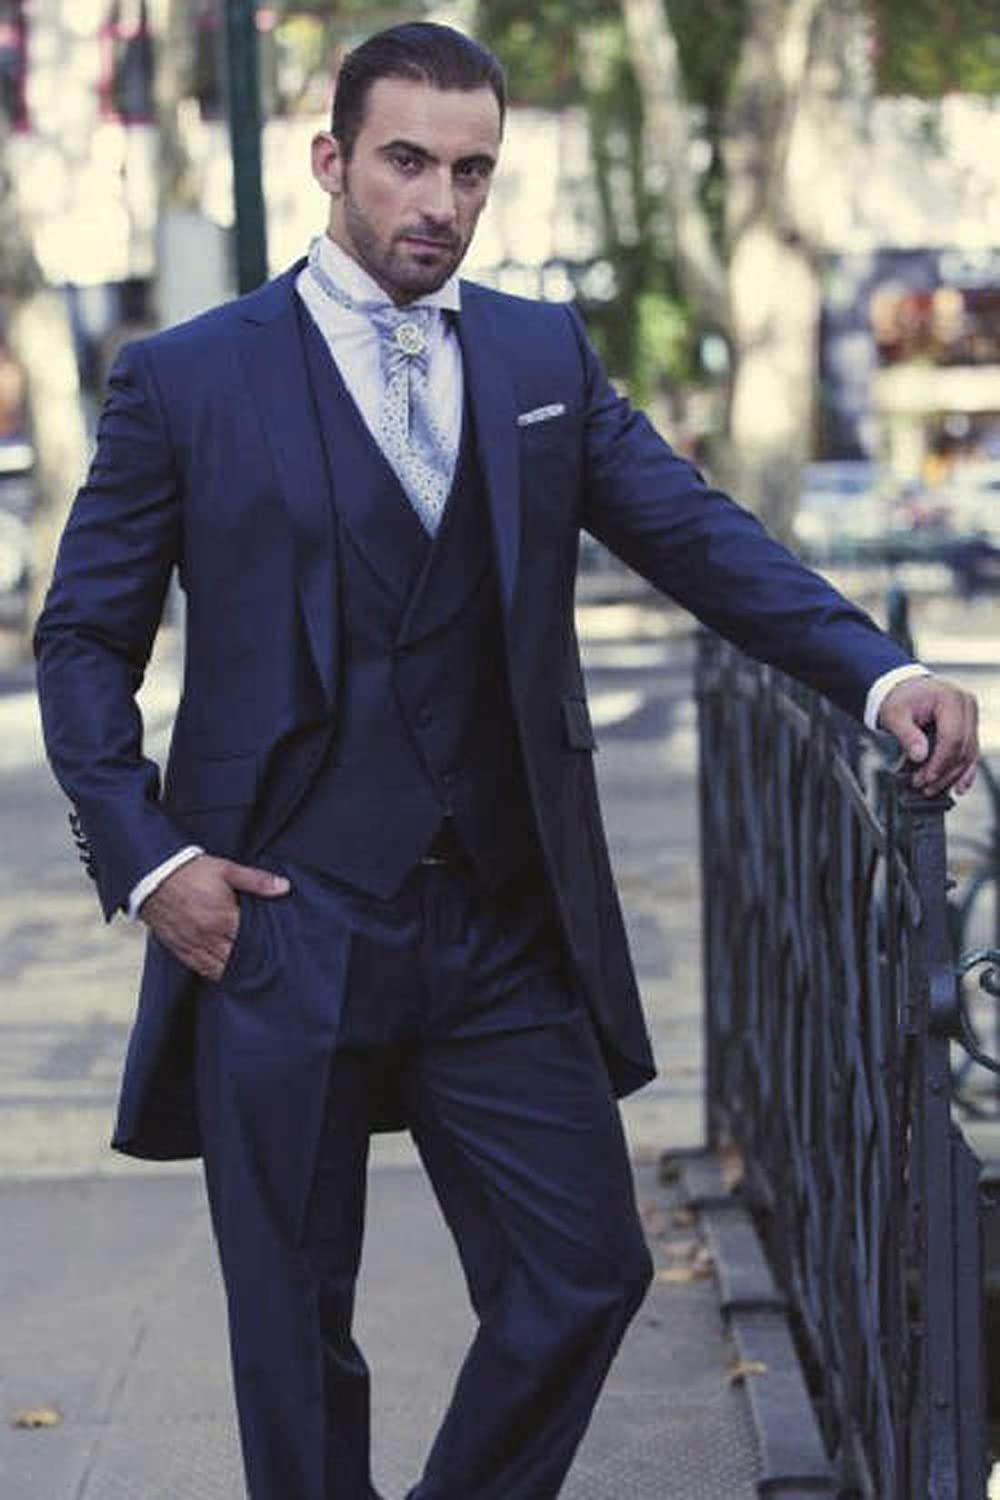 Sxfashbrd Mens Tailcoat Tux Blazer Suits 3 Piece Slim Fit Formal Jacket Pants Long Tail Tuxedos Party Coats Outerwear Navy